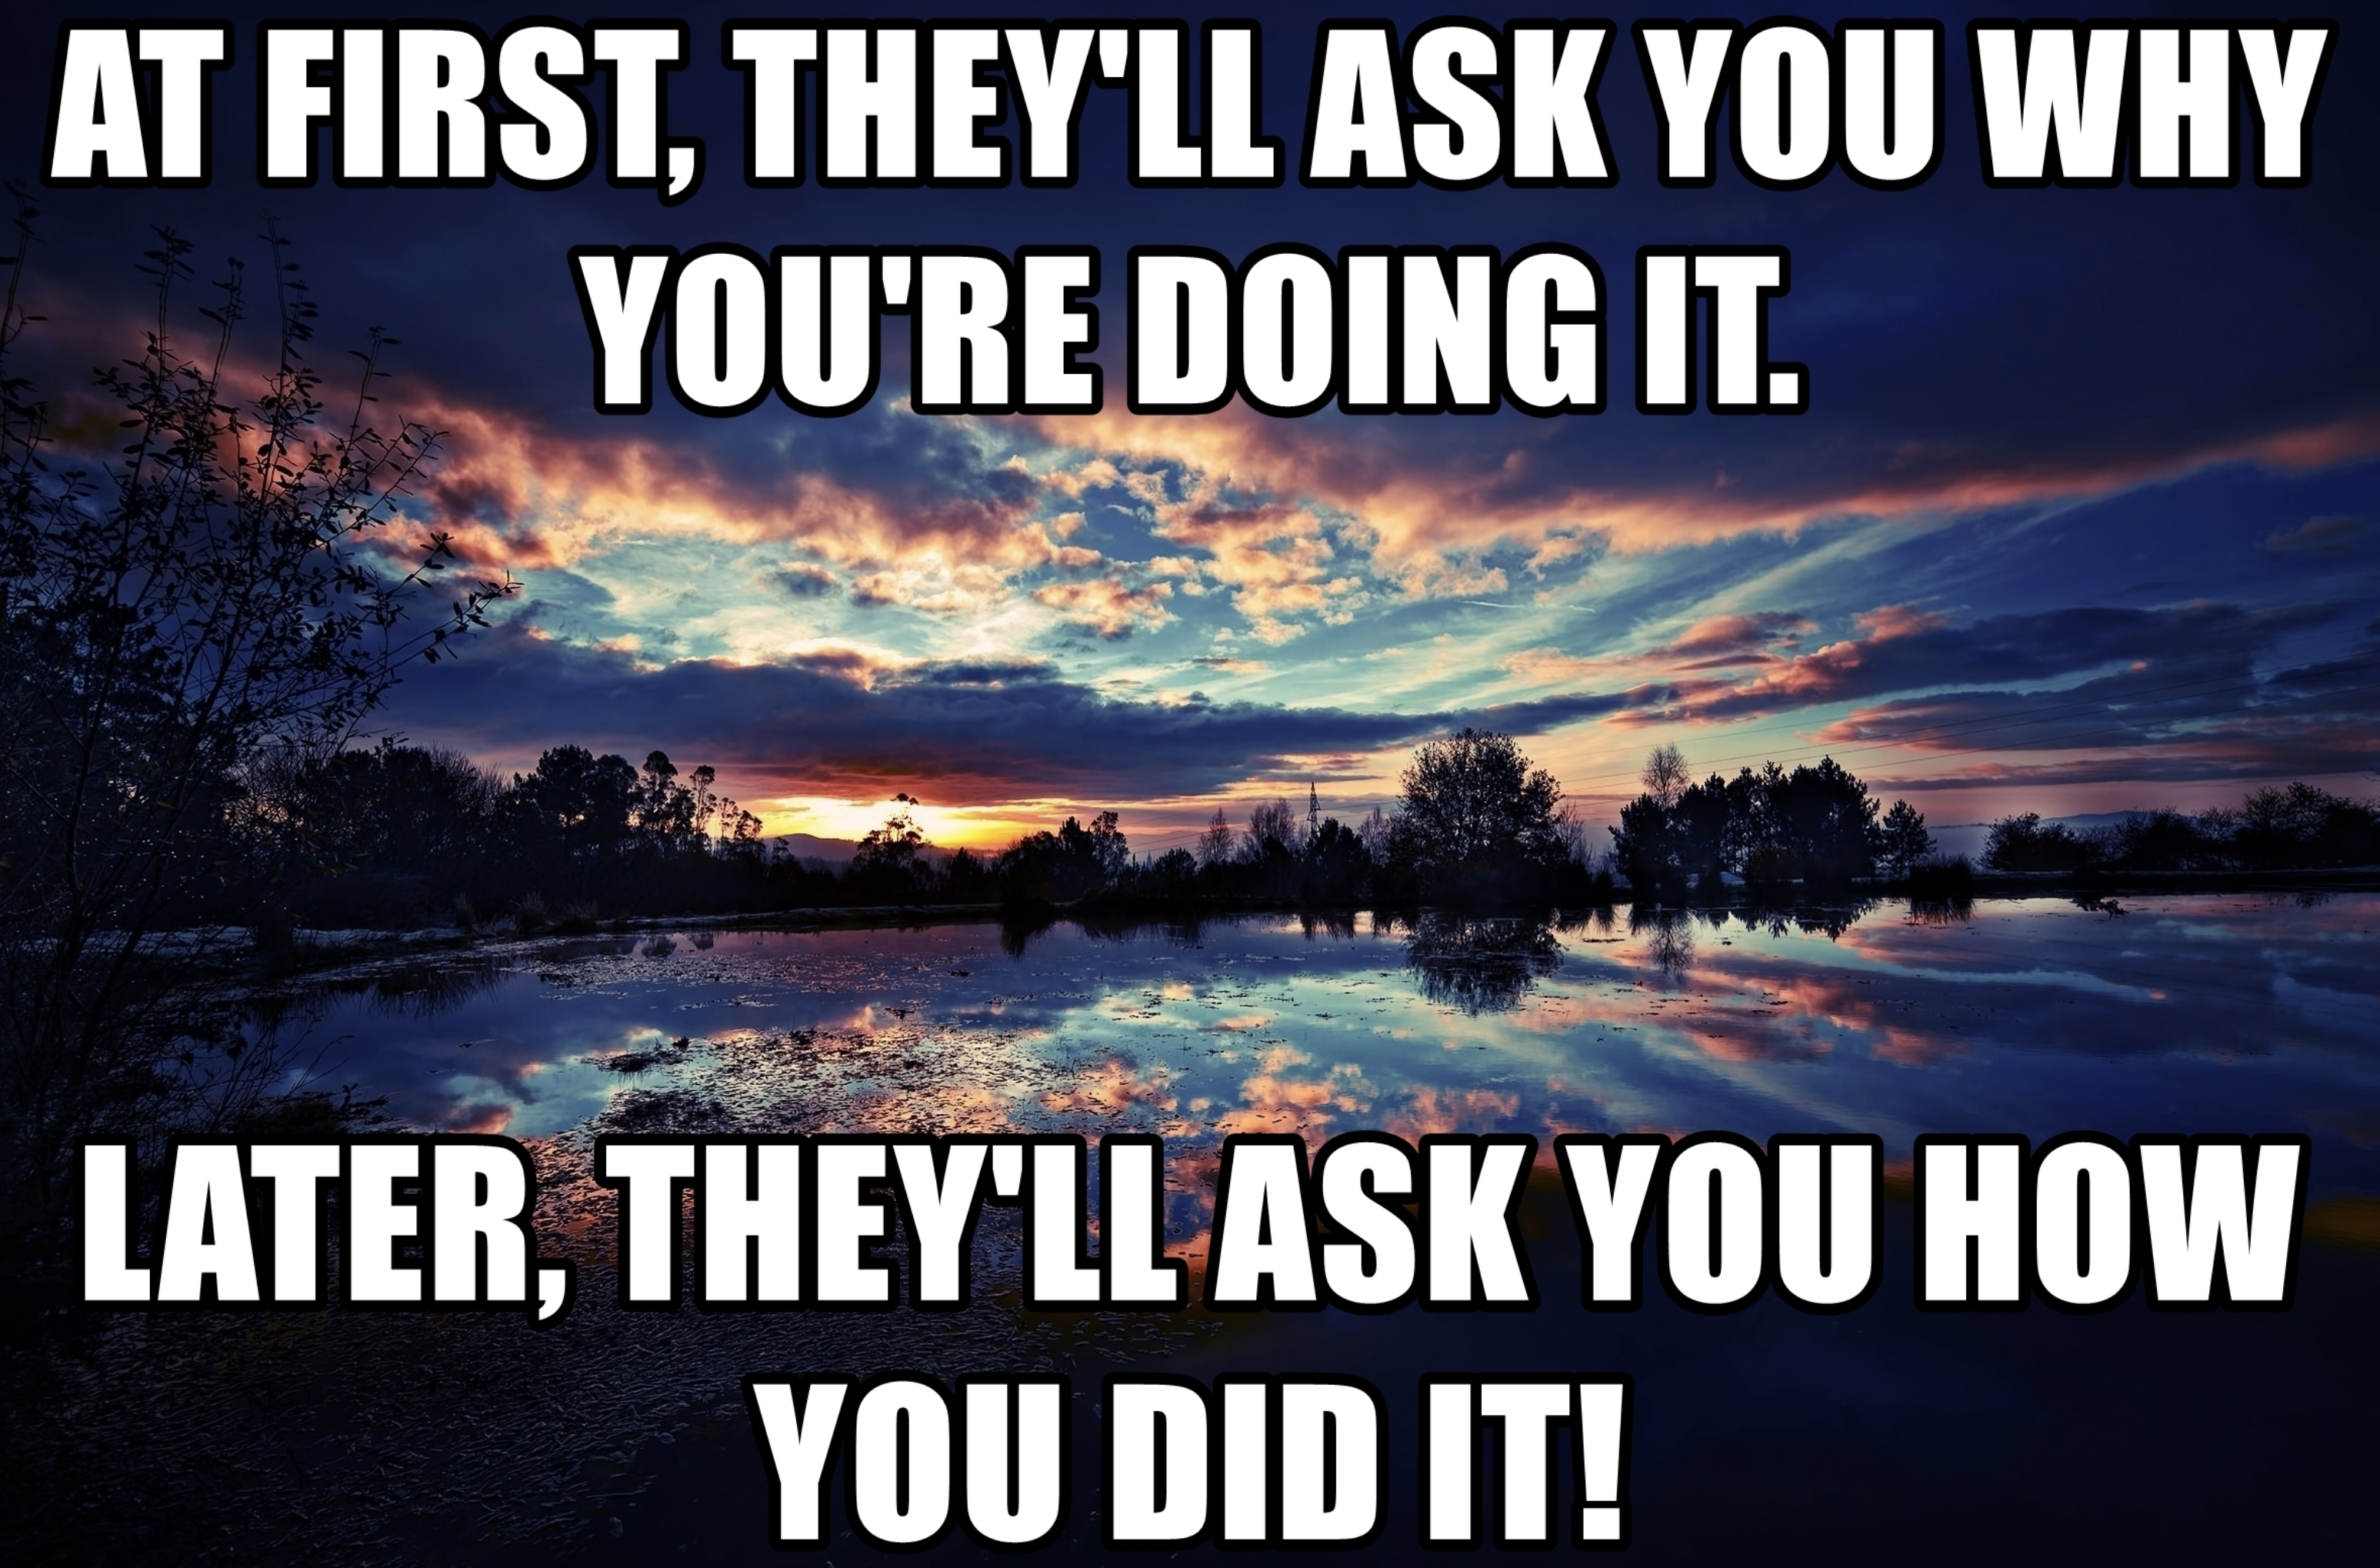 [Image] At first, they'll ask you why you're doing it. Later, they'll ask you how you did it!